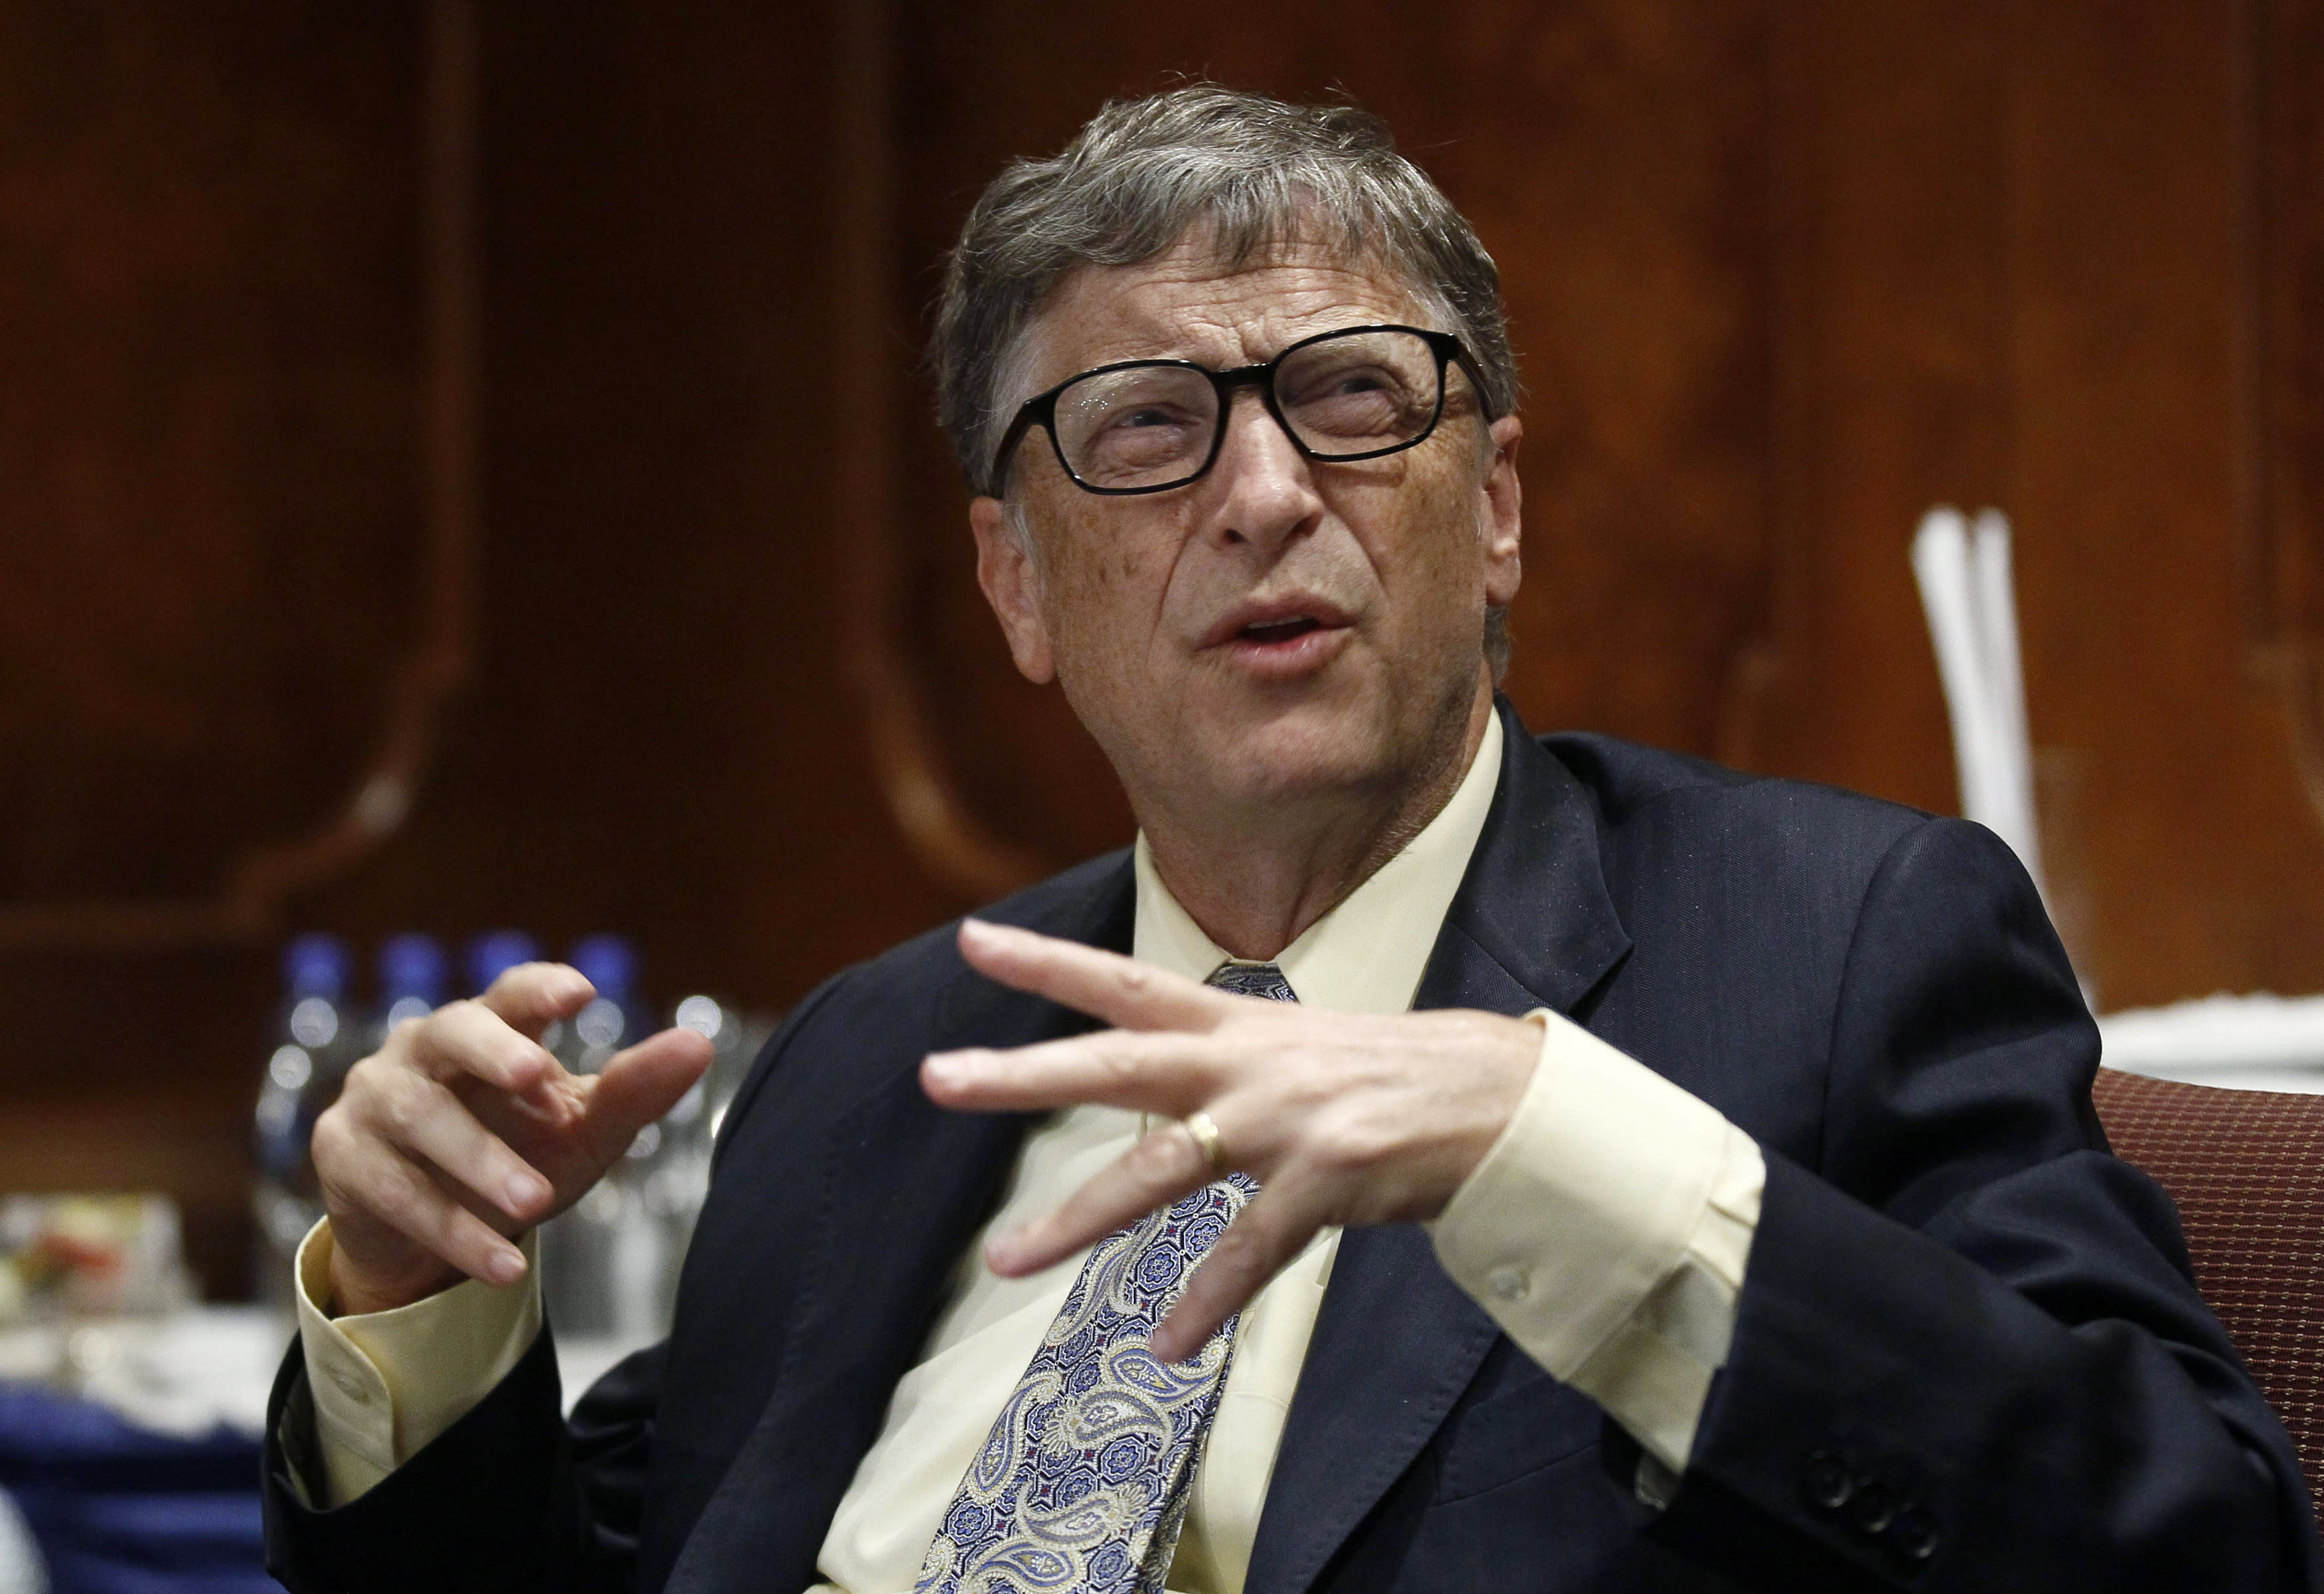 How the original Microsoft Xbox project 'pissed off' Bill Gates because it didn't improve Windows